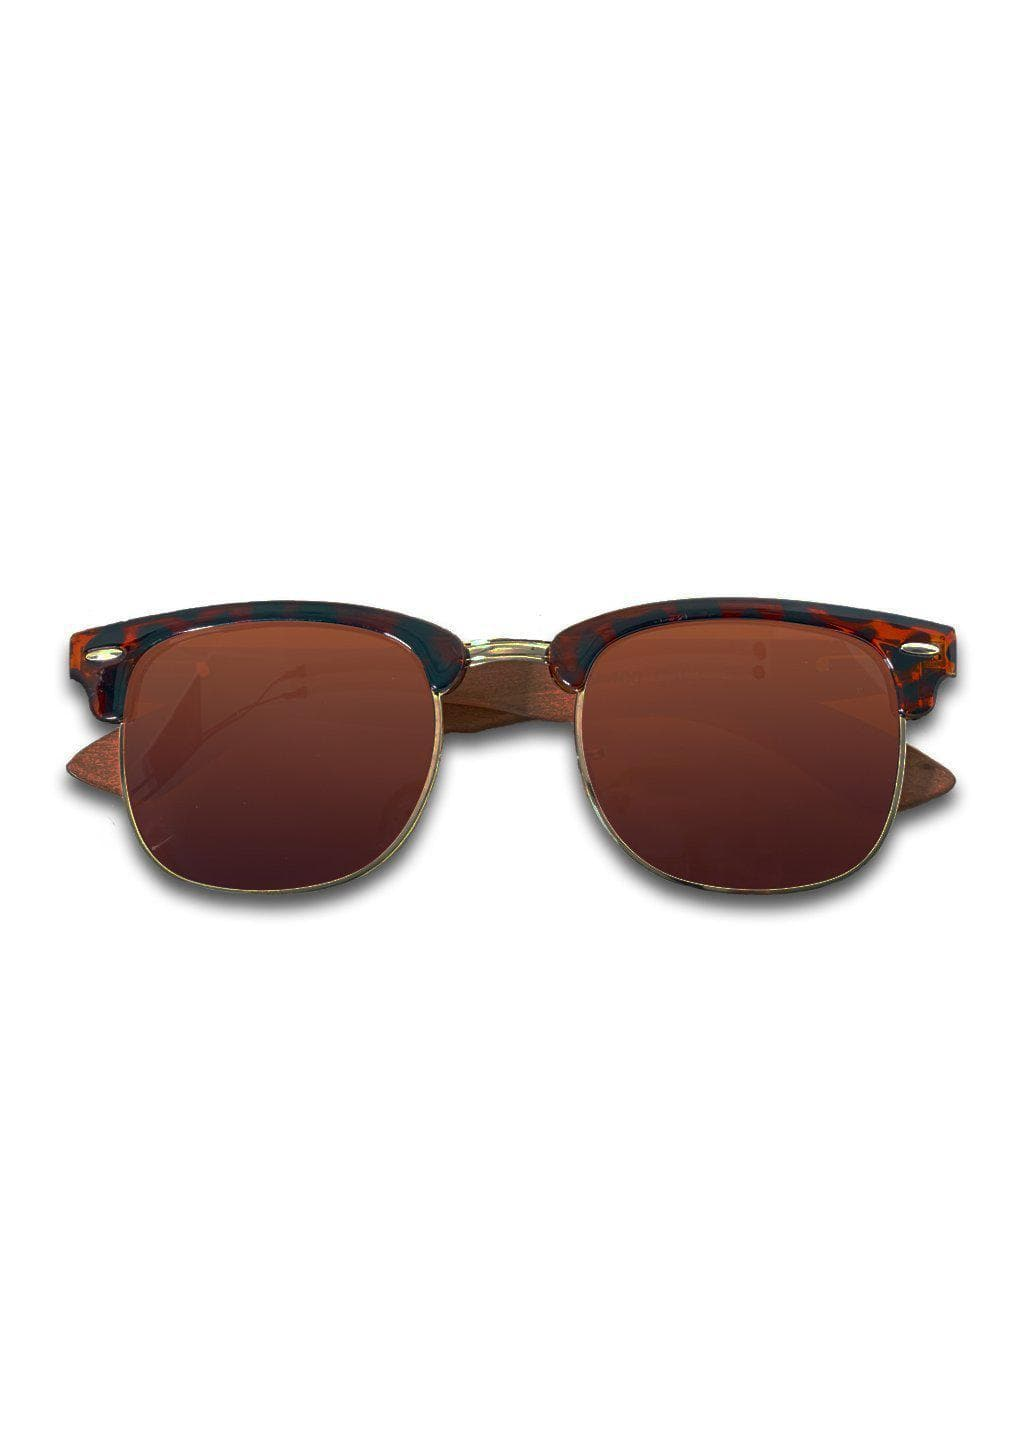 Eyewood Clubmaster - Cassidy - Our classic wooden sunglasses with style from the 1970s.